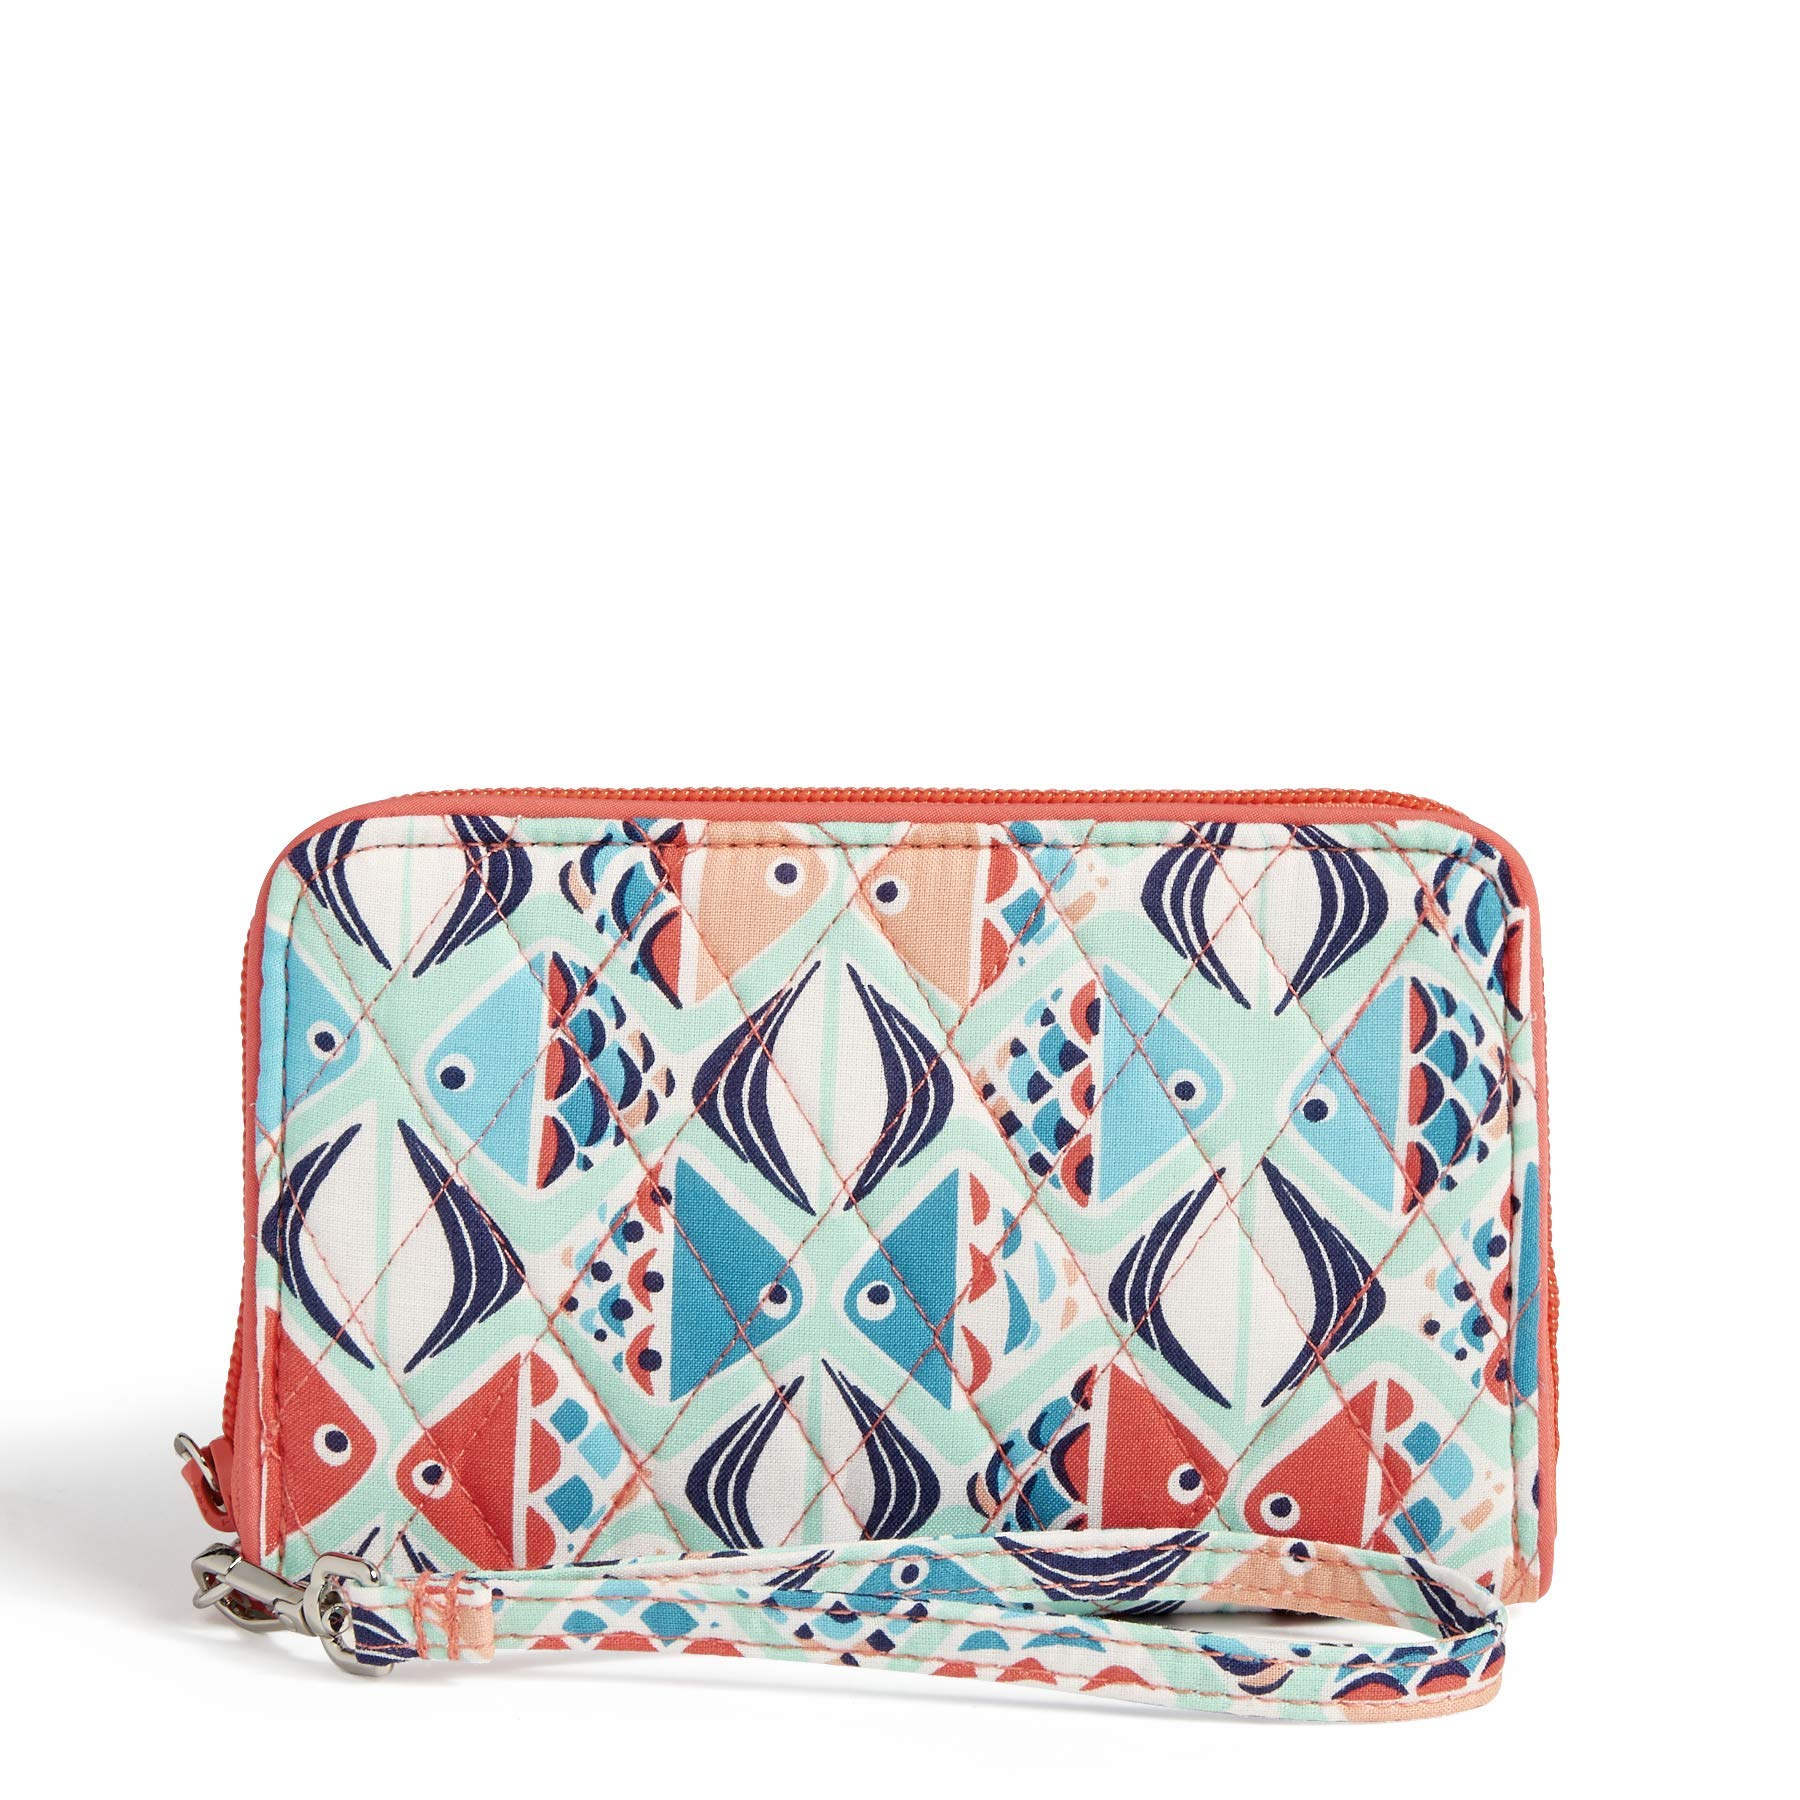 Vera Bradley RFID Grab & Go Wristlet, Signature Cotton, Go Fish